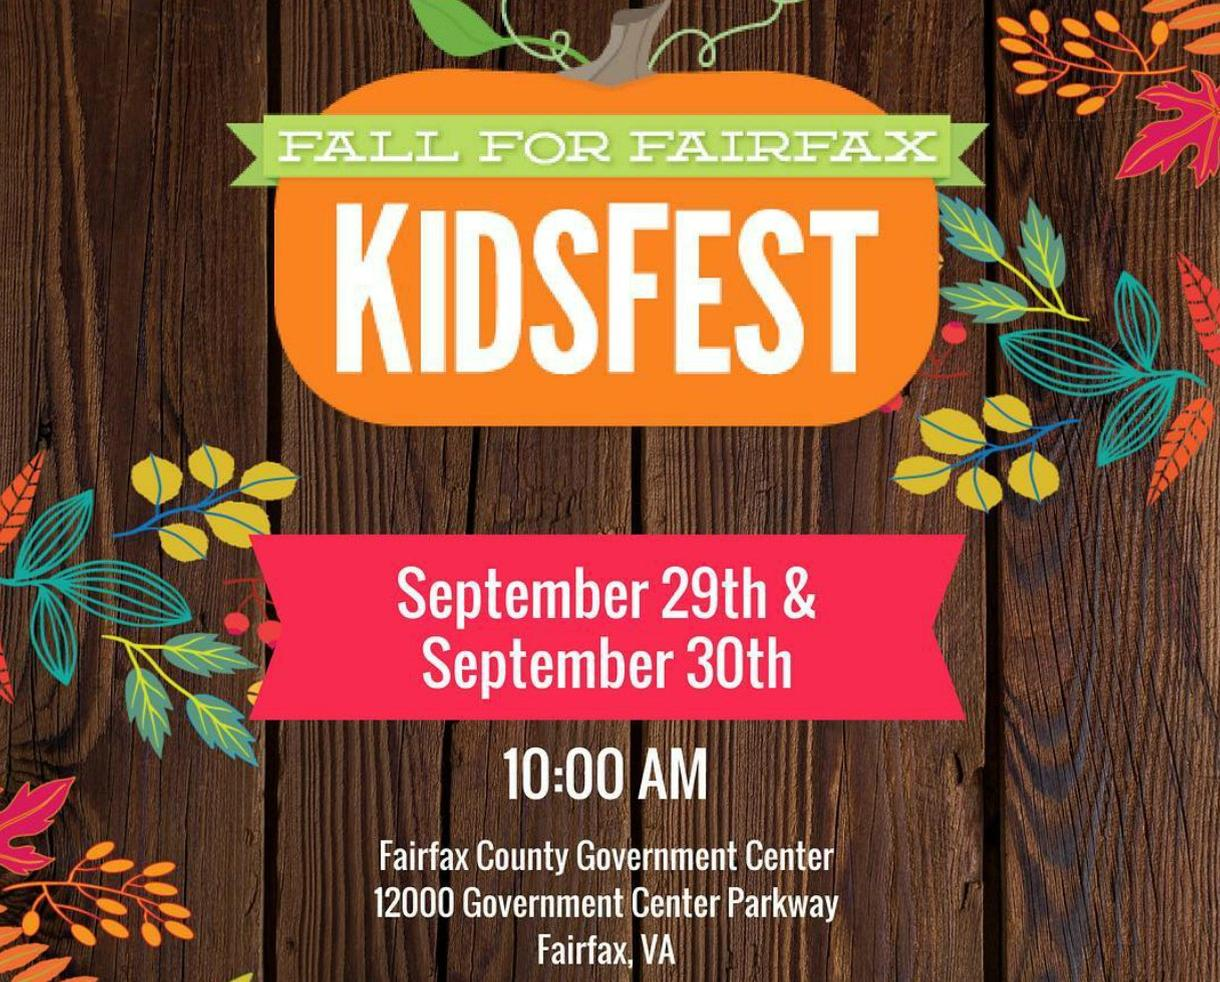 Fall For Fairfax KidsFest - 2 Unlimited Ride Super Passes & VIP Parking!